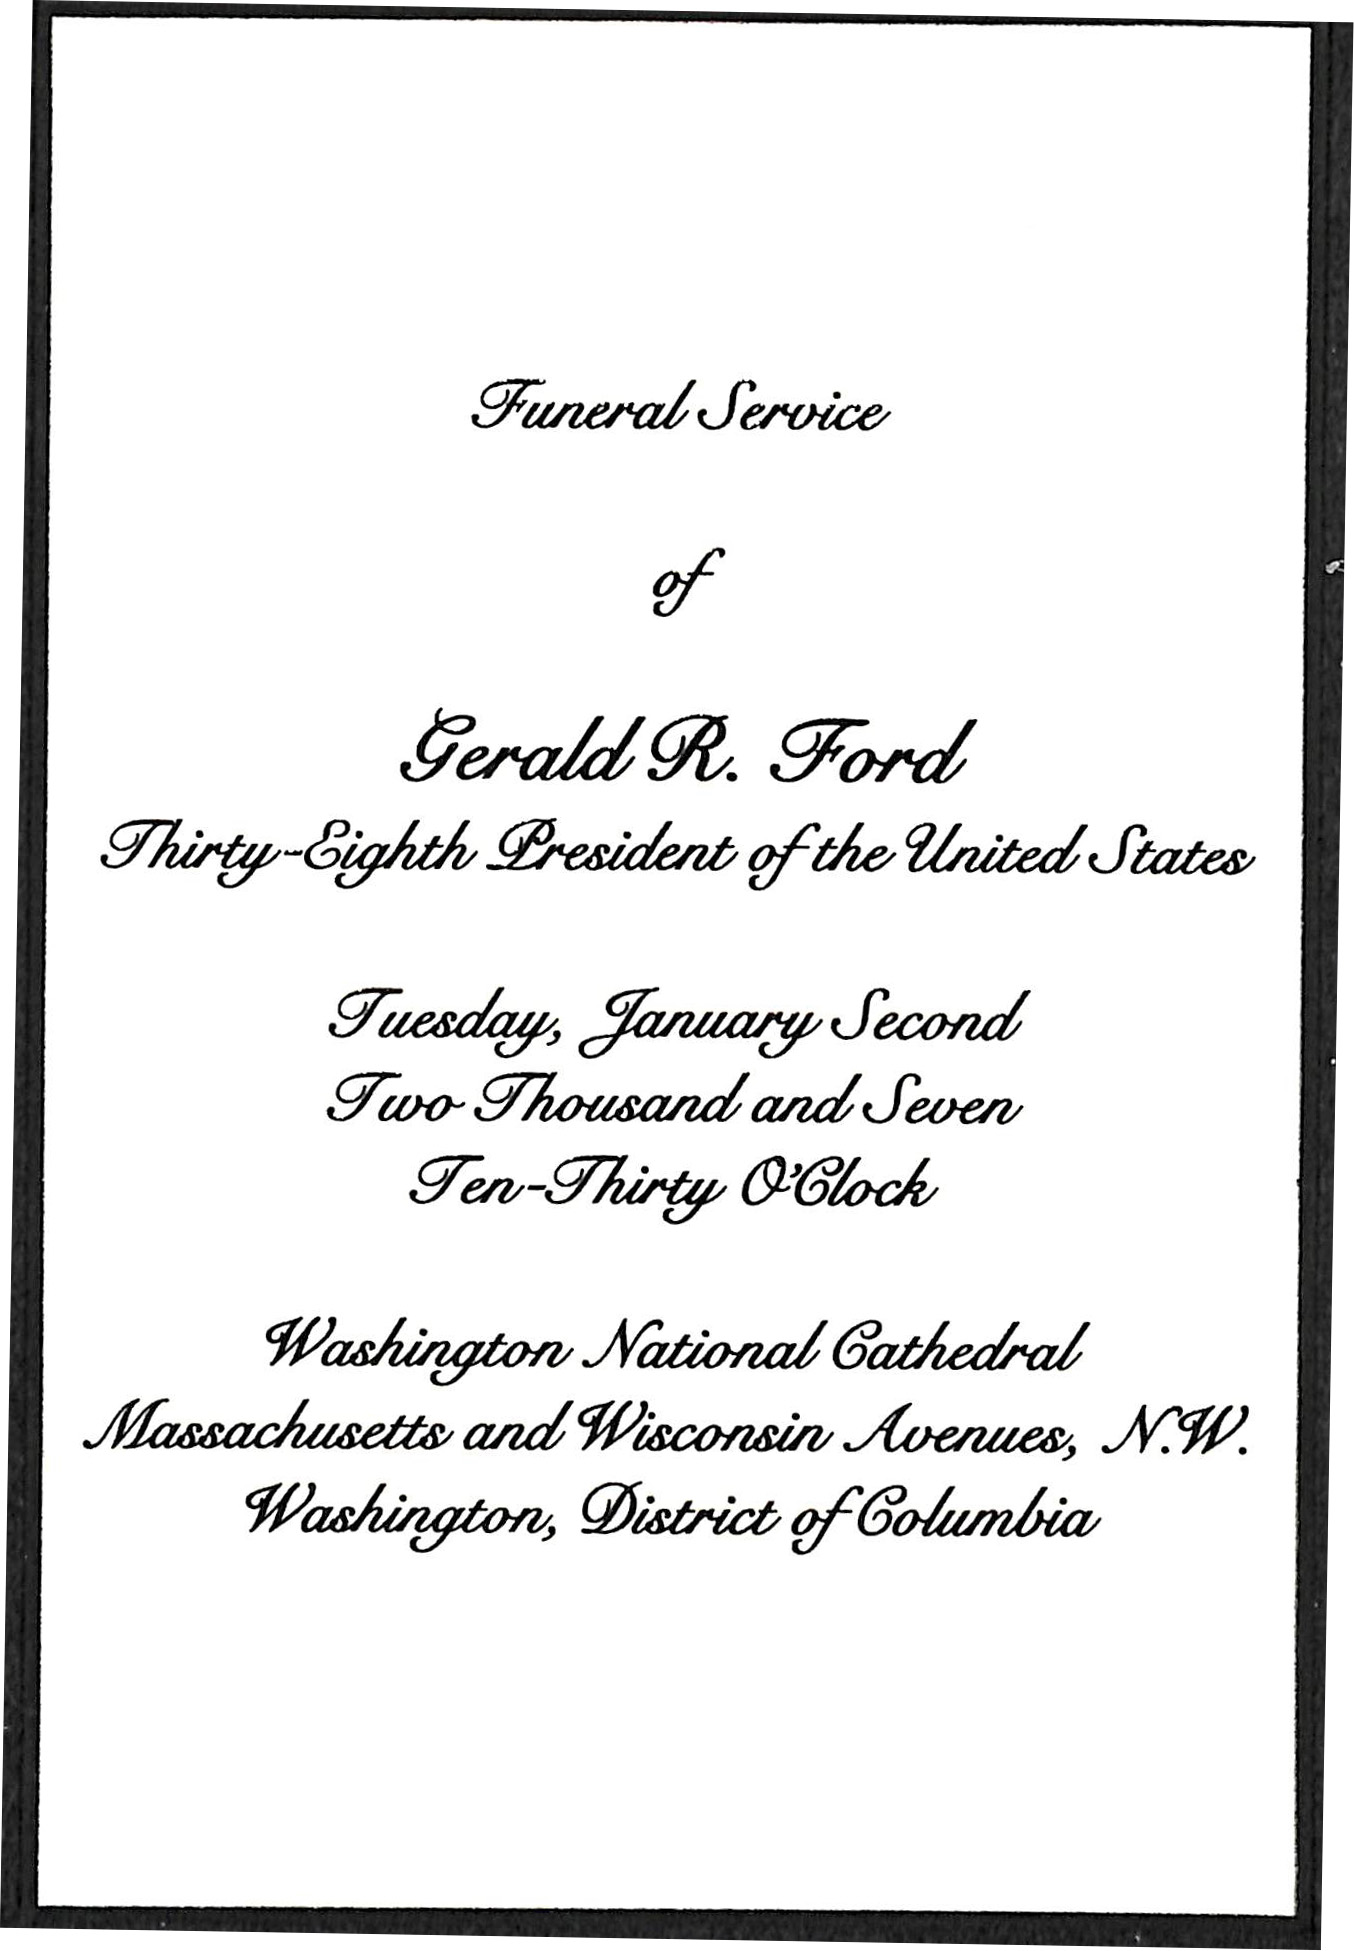 Mem 17 Rare Original And Official Invitation To The Washington,D.C. Funeral  Of President Gerald Ford With Entrance Card And Original Envelope  Invitation For Funeral